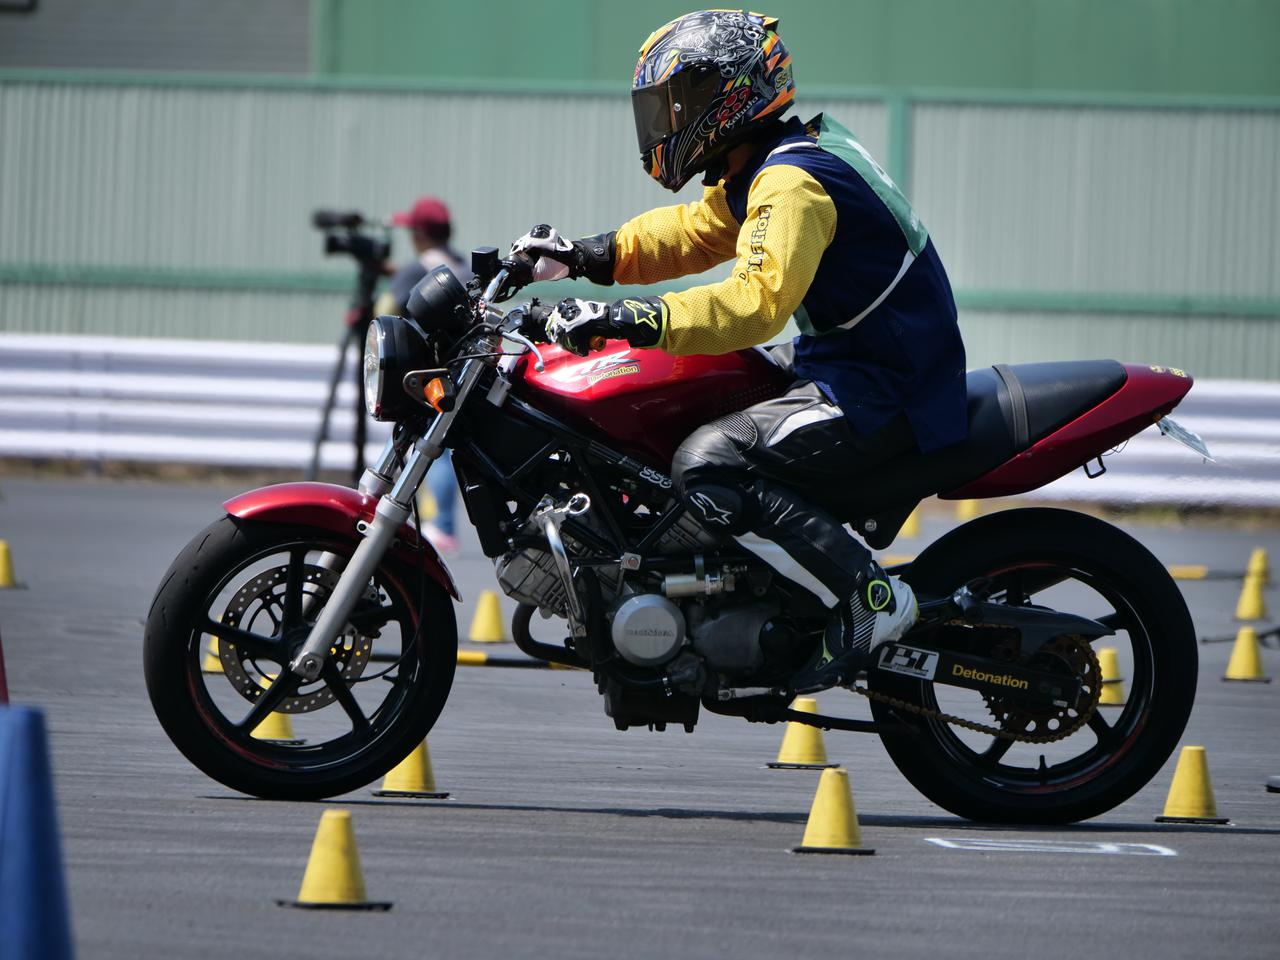 Images : 7番目の画像 - ジムカーナで活躍するホンダ「VTR」をもっと見る! - LAWRENCE - Motorcycle x Cars + α = Your Life.